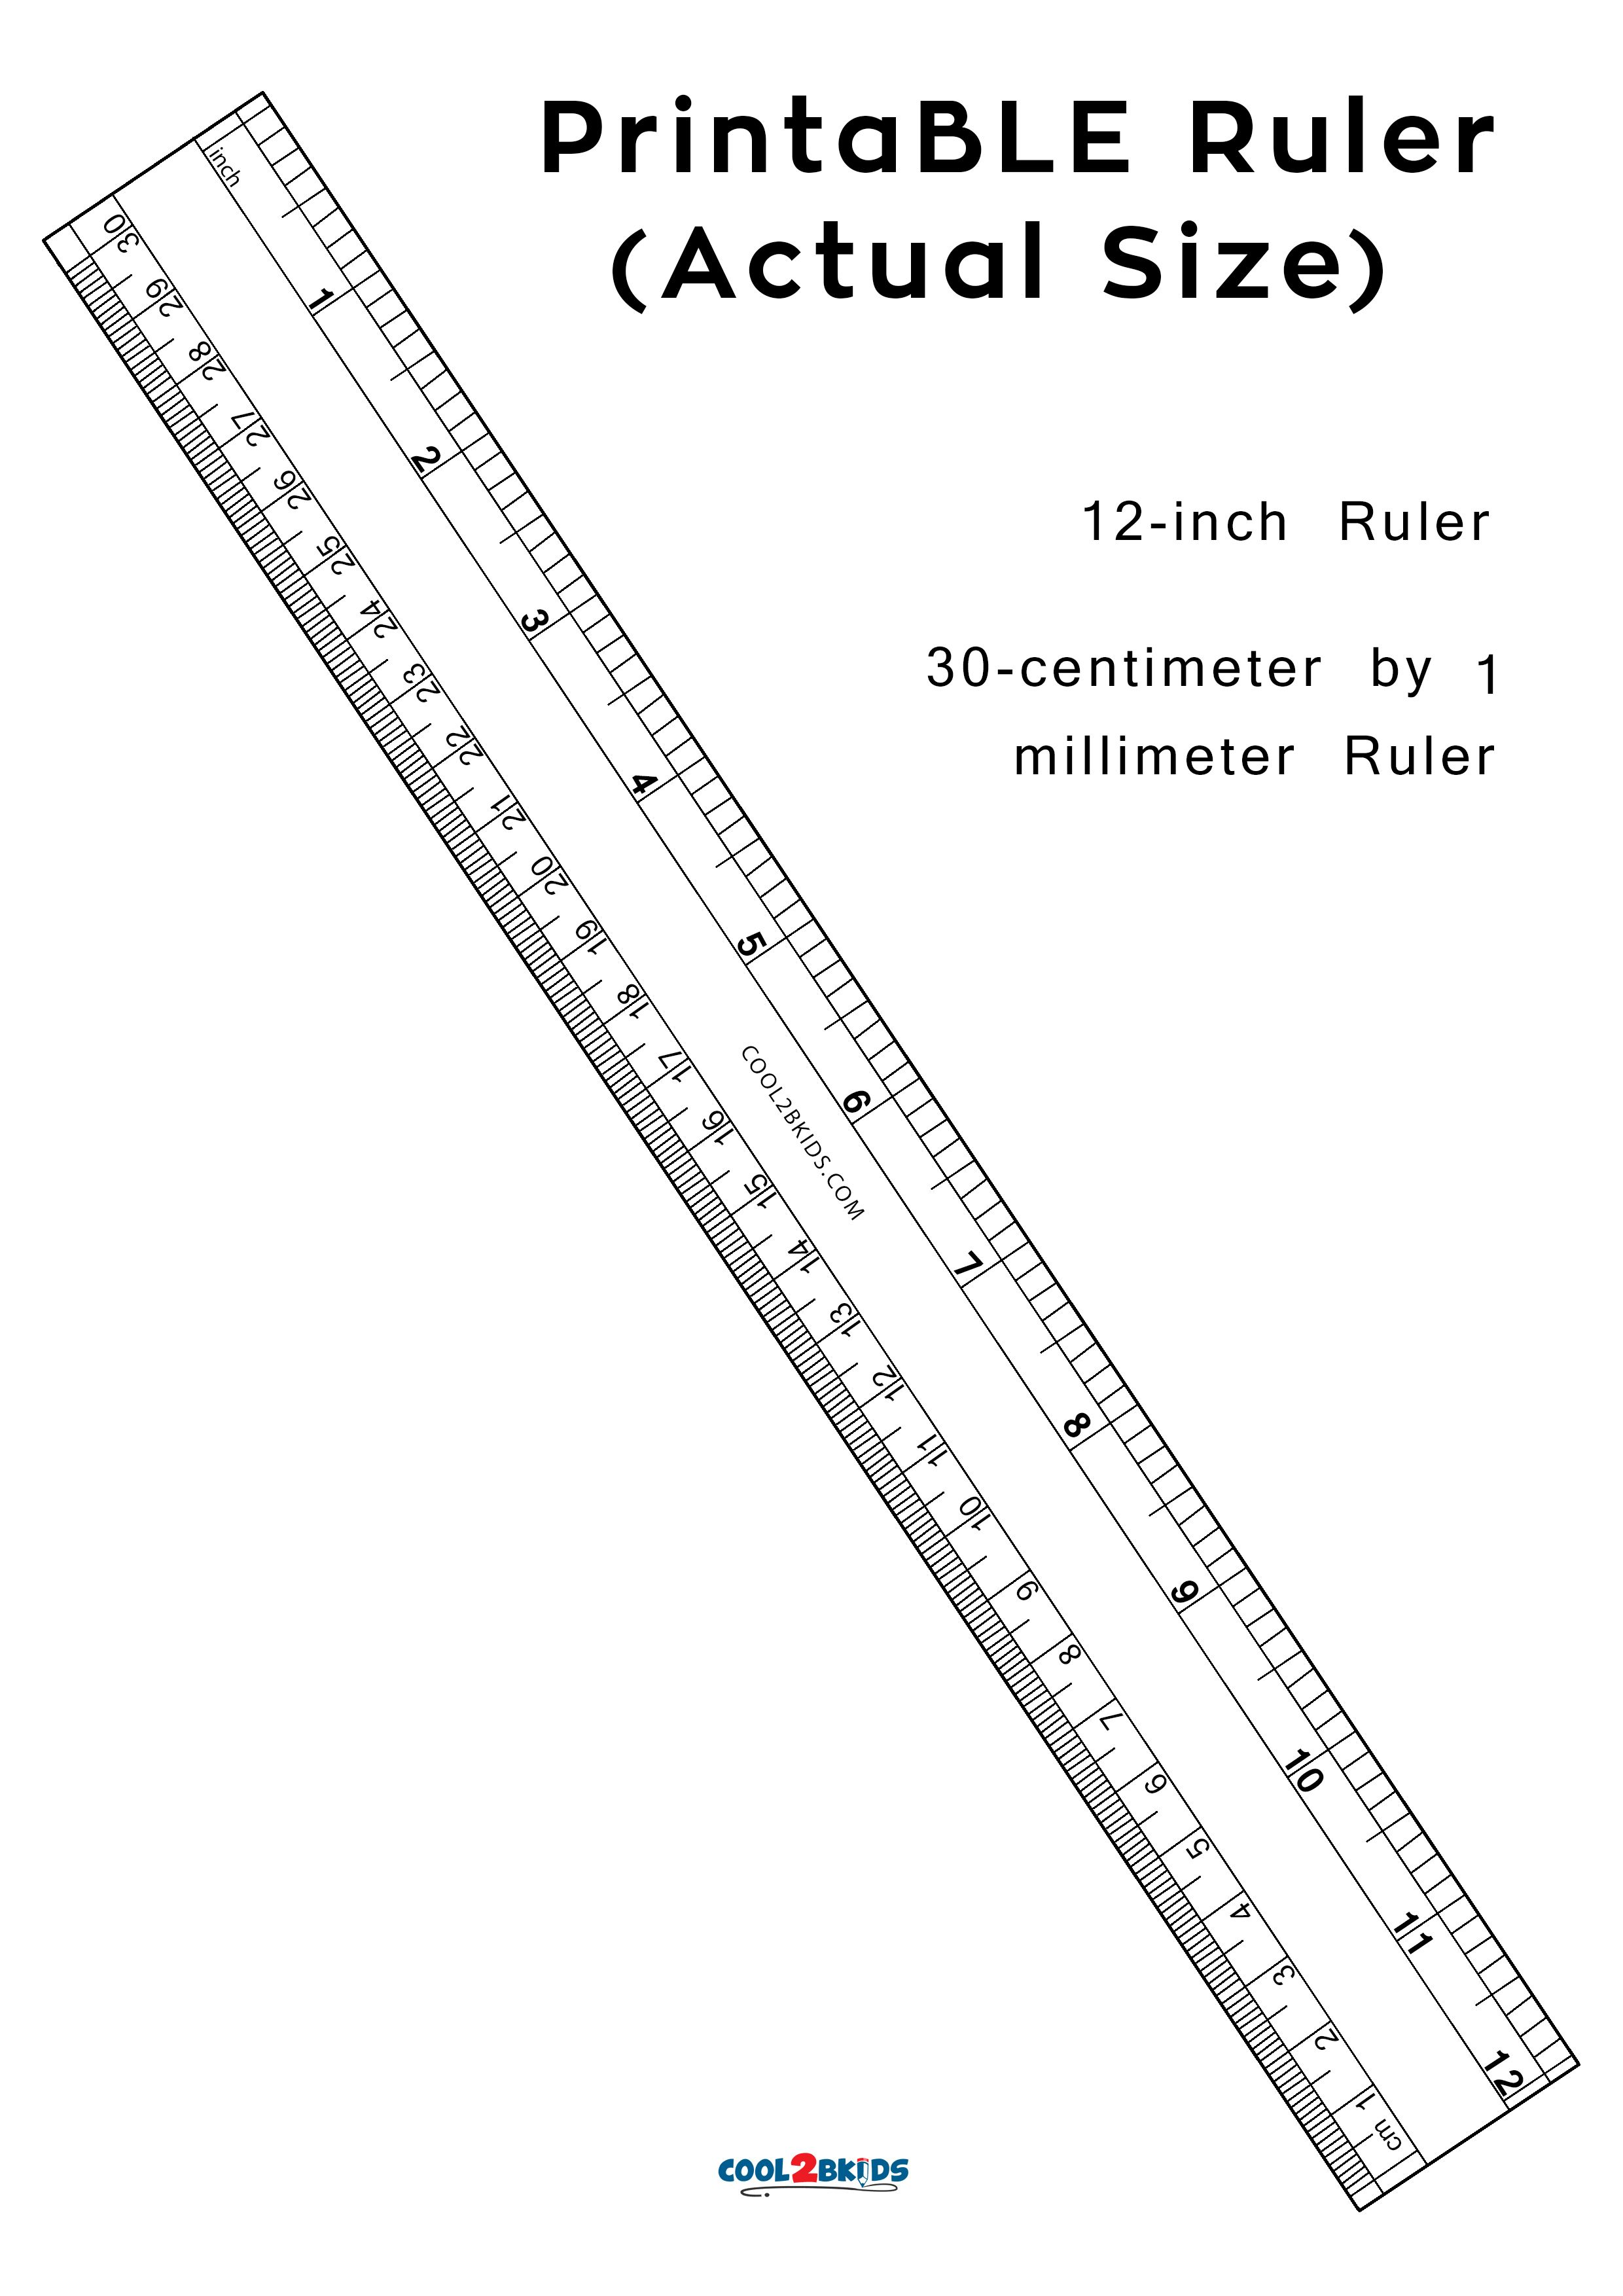 Printable 12 Inch Ruler For Actual Size Measurements In